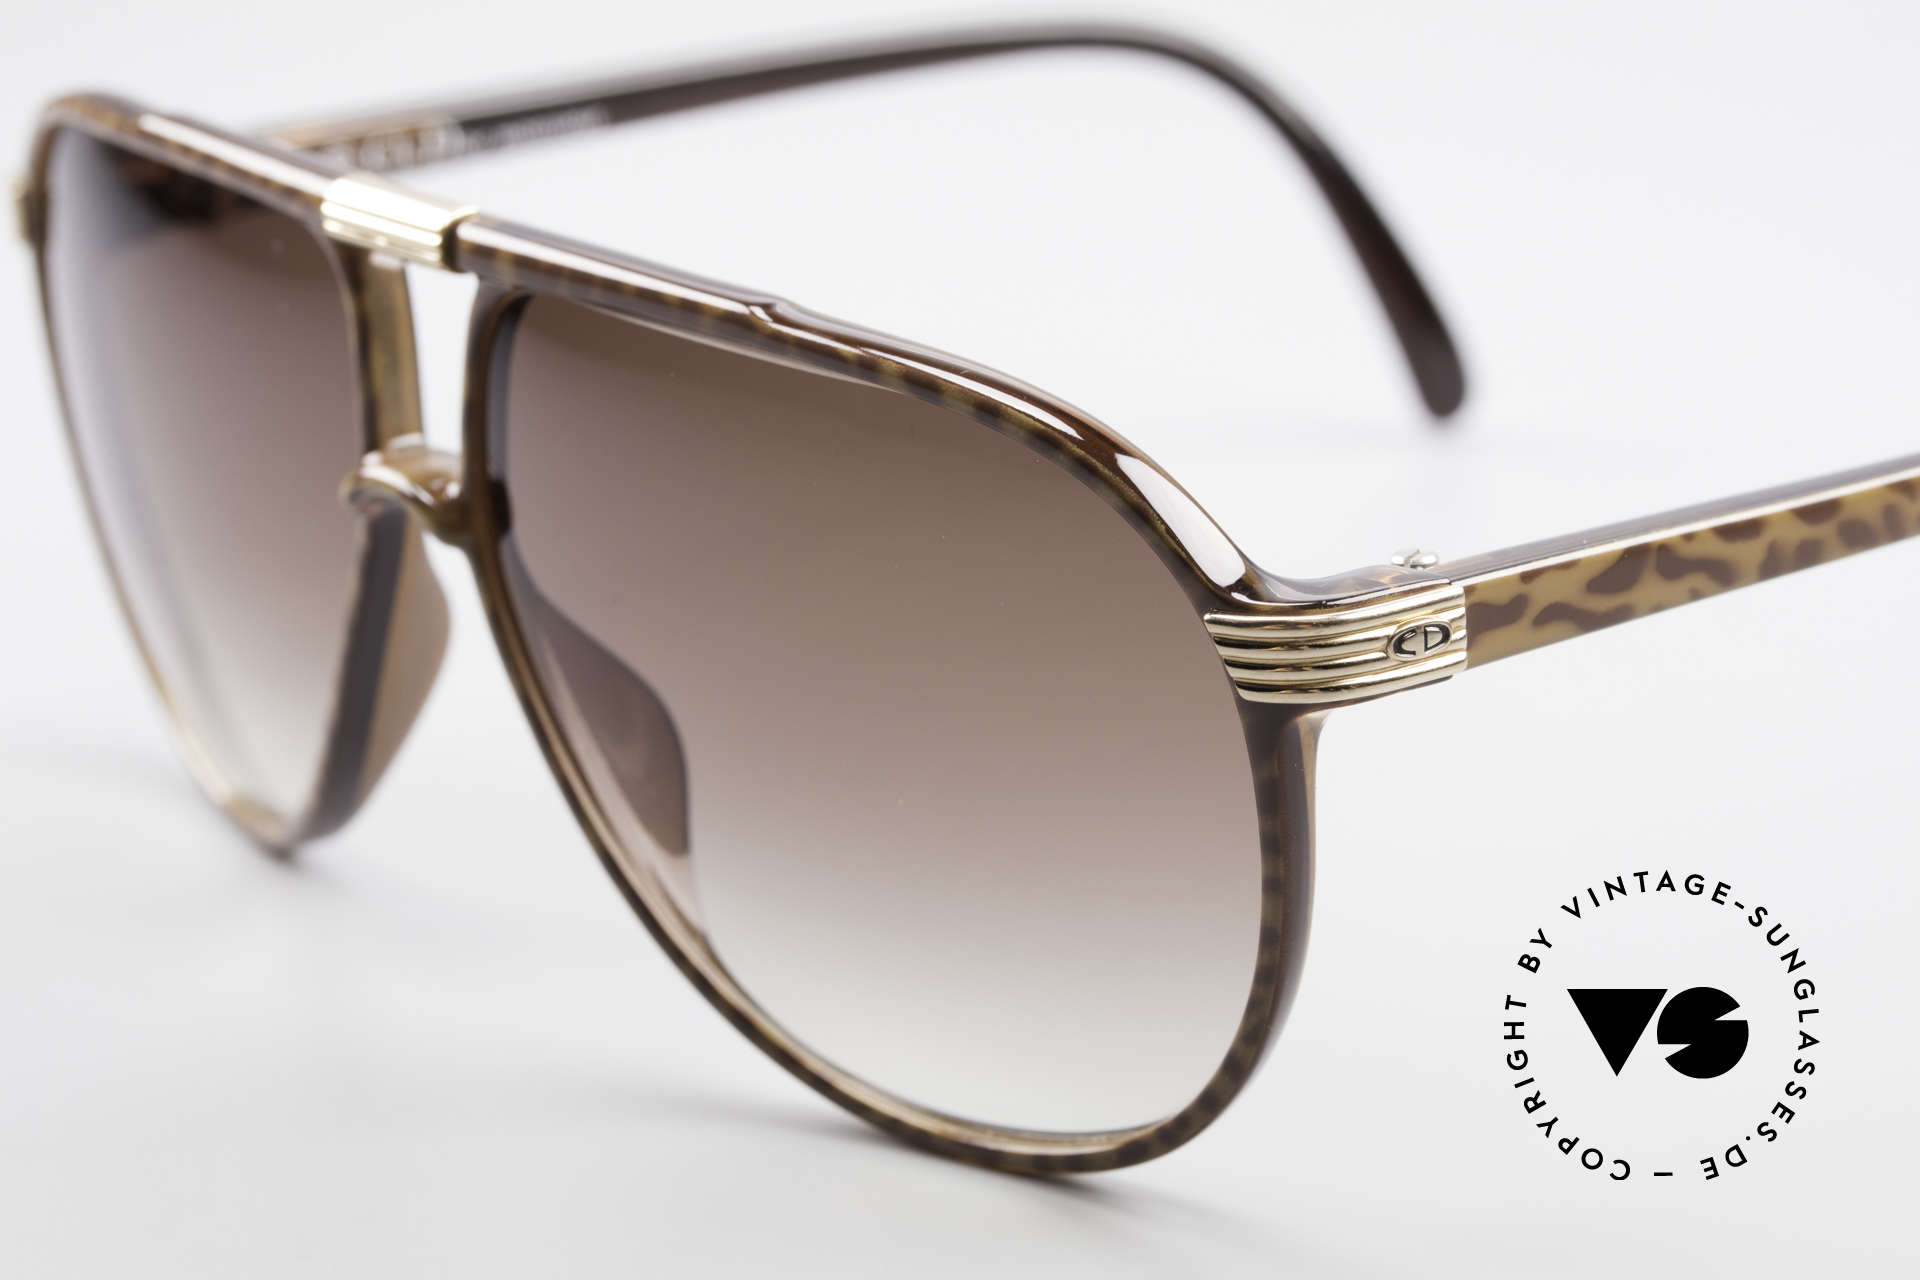 Christian Dior 2300 80's Aviator Sunglasses, Optyl material does not seem to age (built to last), Made for Men